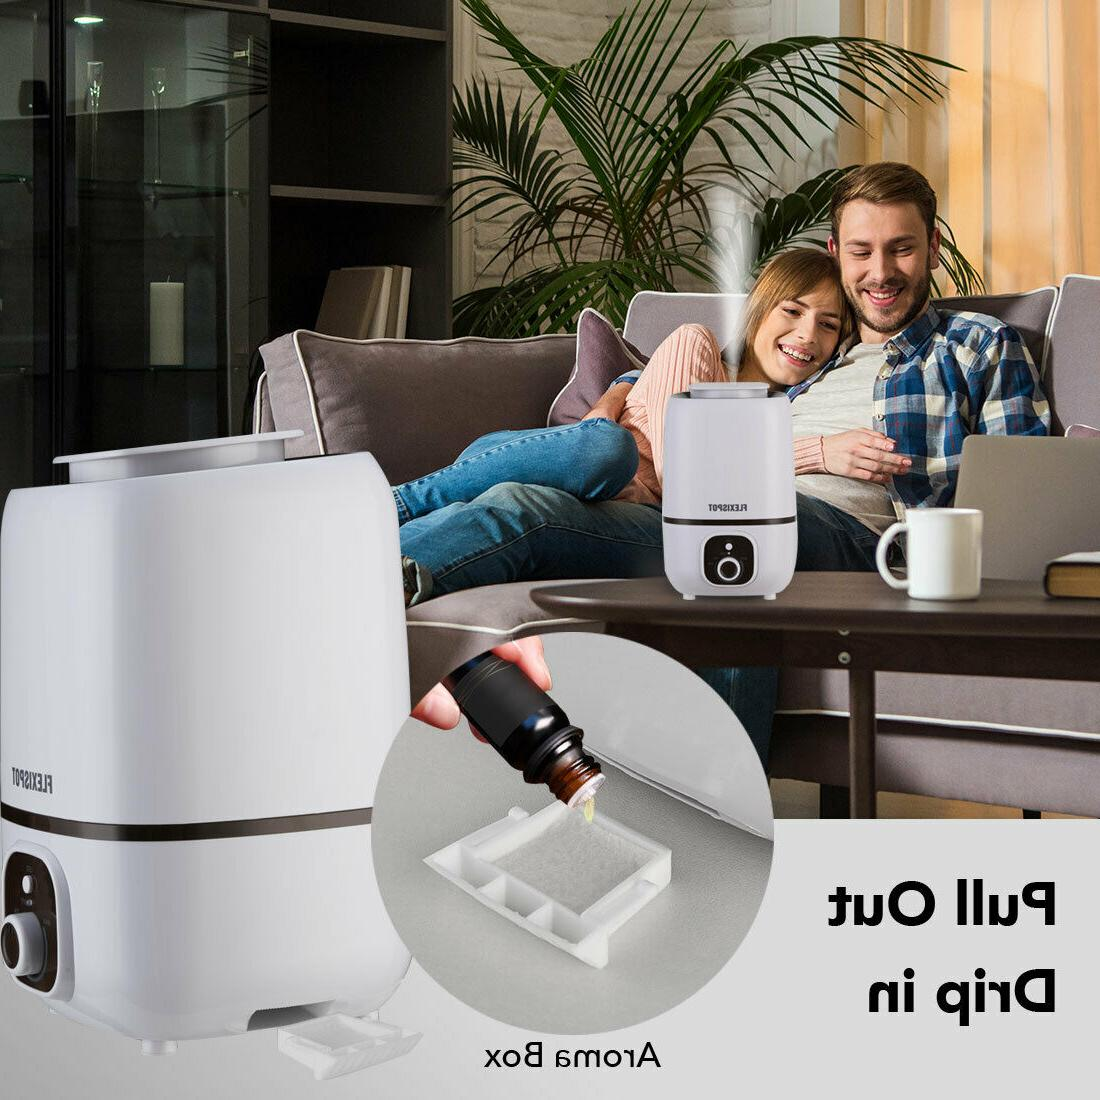 Humidifiers Cool Mist for Bedroom with Aromatherapy